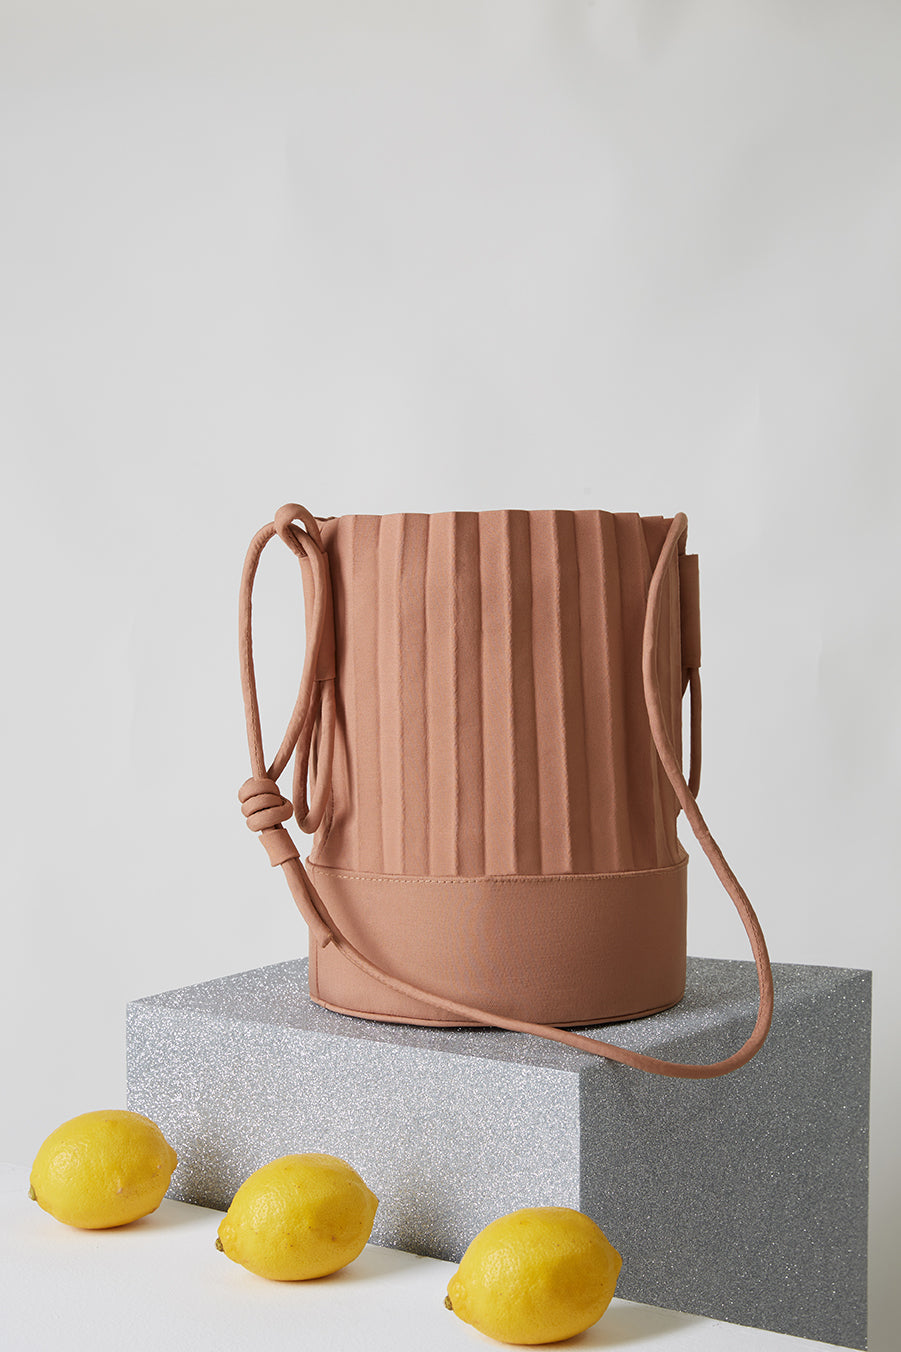 aPail | Bucket bag in Sand